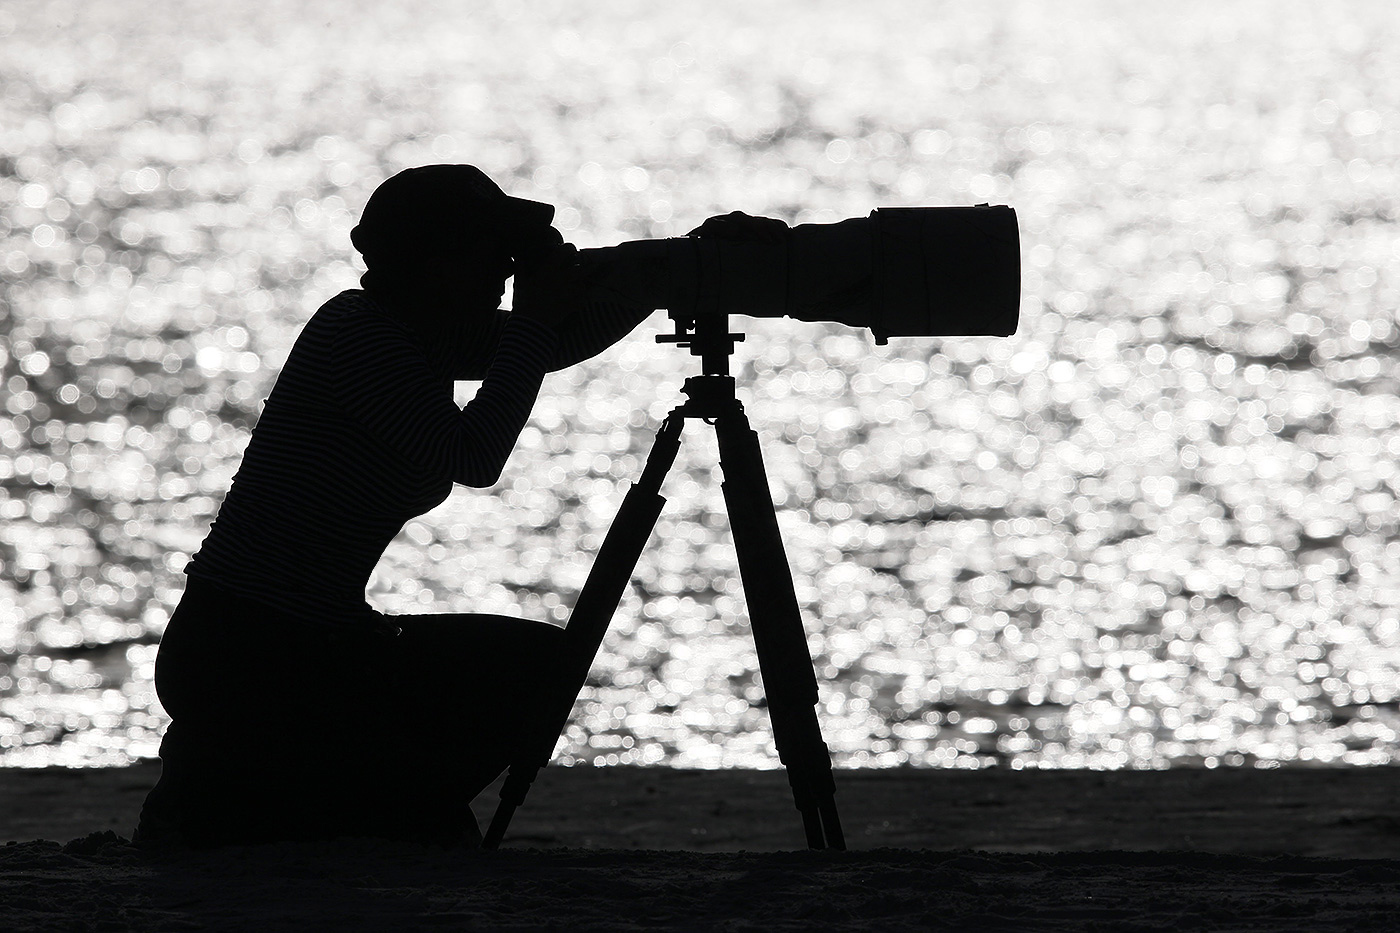 THE RIGHT GEAR FOR EVERY IMAGE…. - For landscape photography I rely on my Sony gear. For birds and wildlife I use Canon and Sony. I use my Olympus gear for travel, infrared and flower photography.